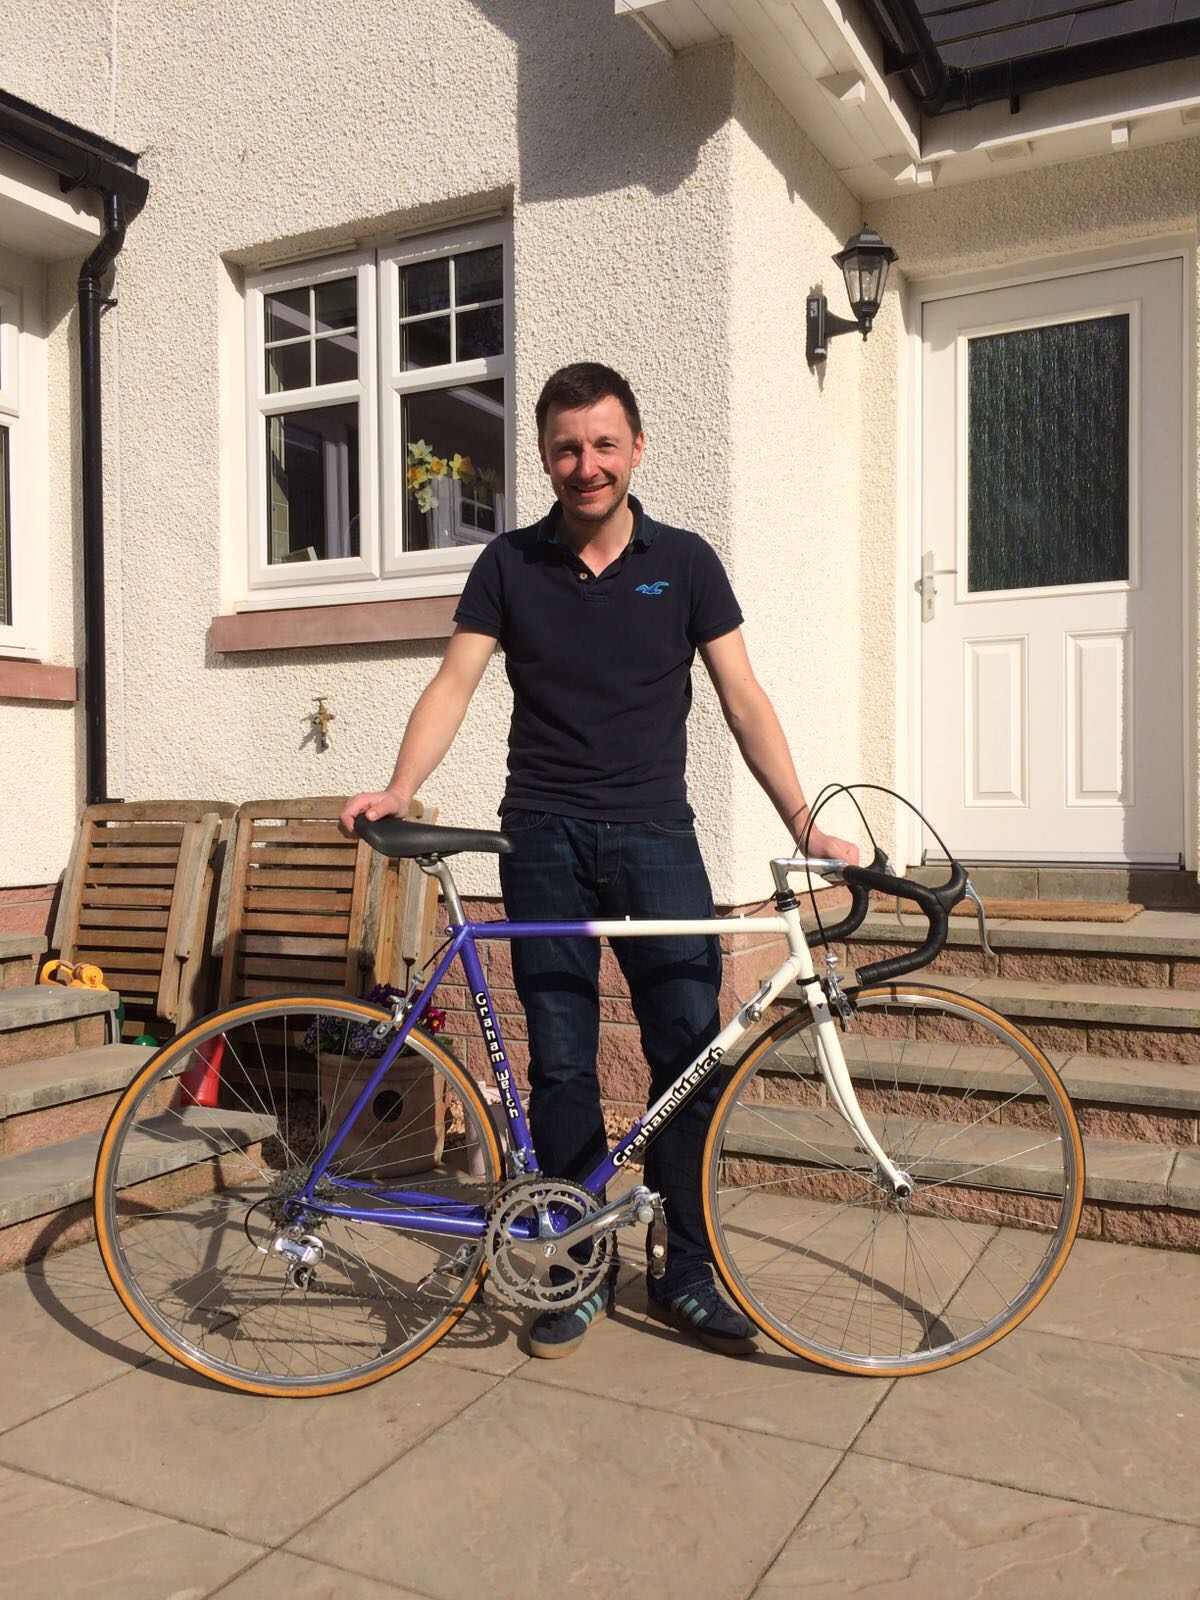 The finished bike in the hands of its new (original) owner.